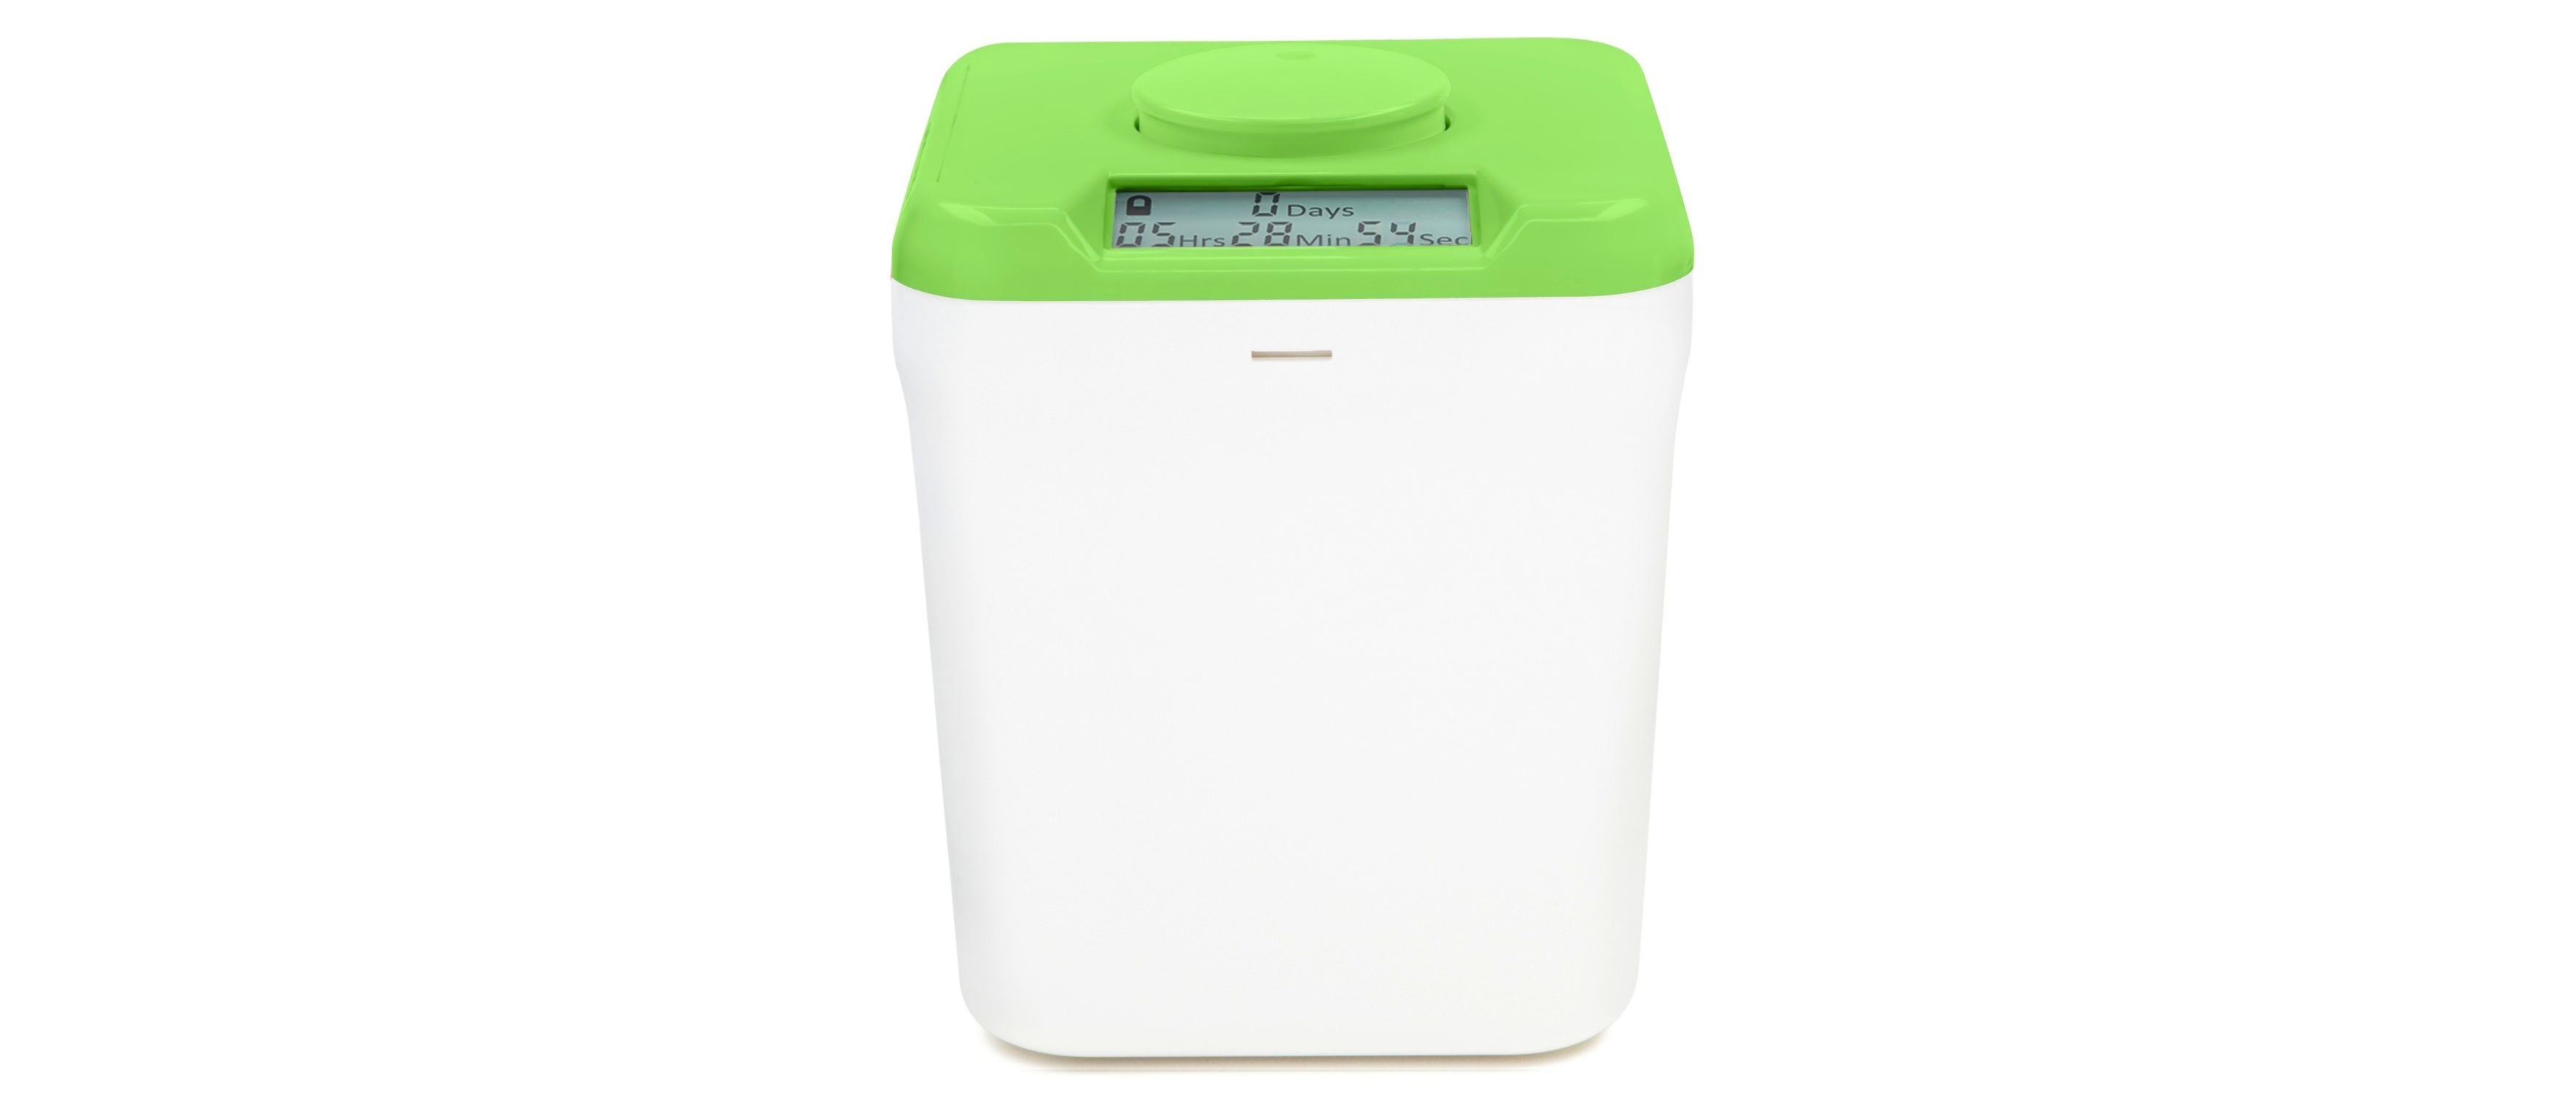 Green Kitchen Safe with White Base